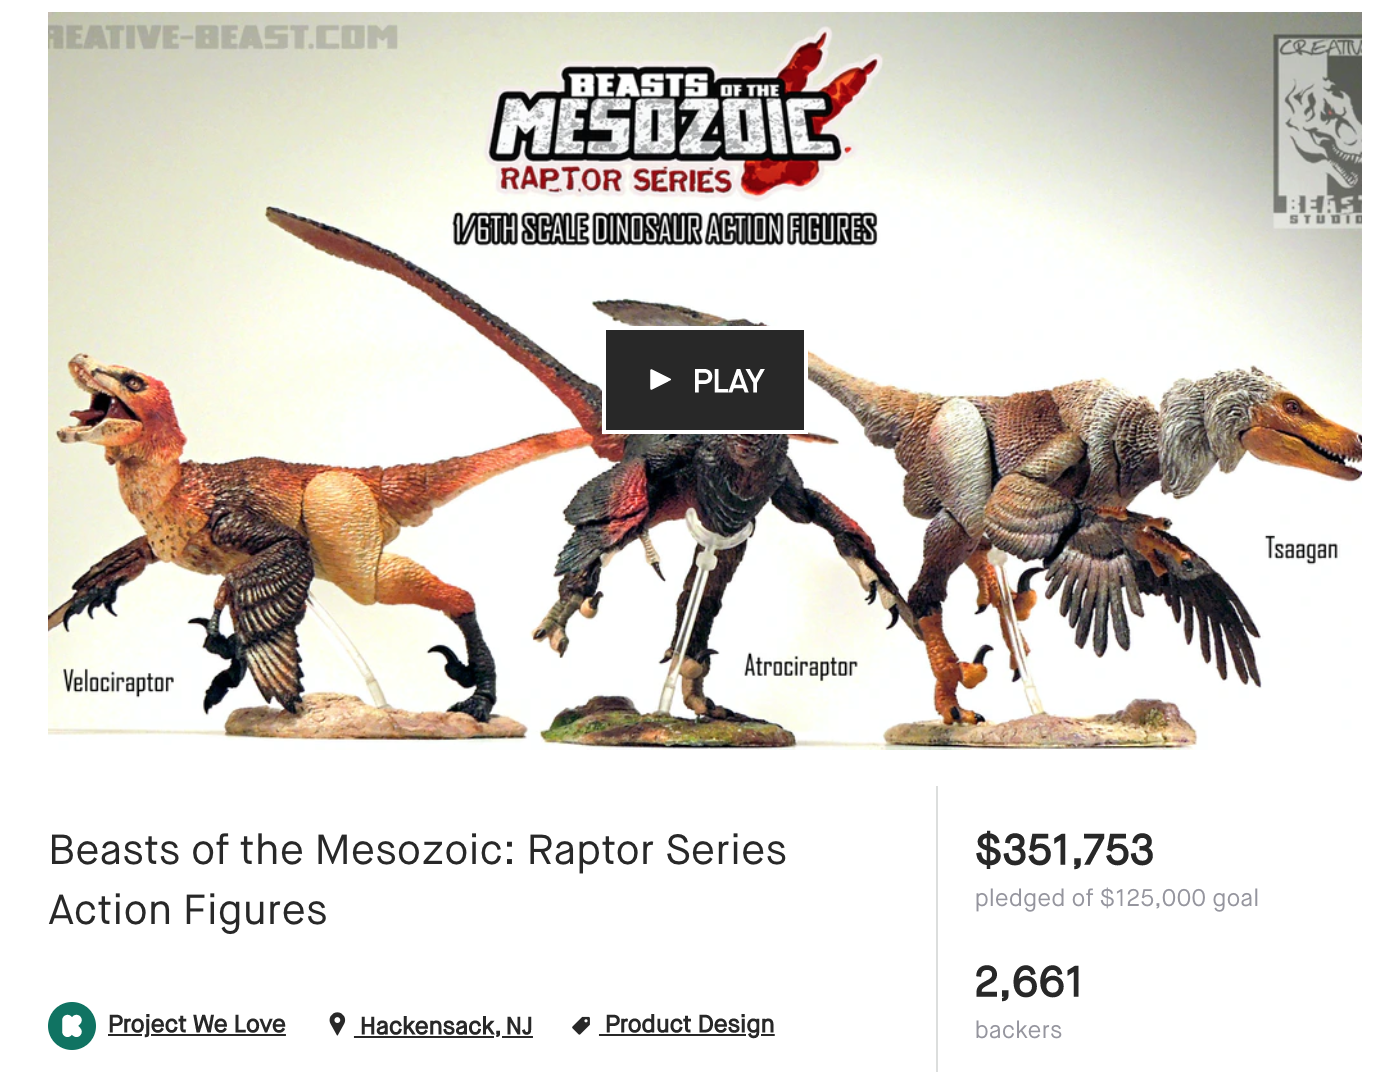 Screenshot of the Beast of the Mesozoic Raptor Series Kickstarter